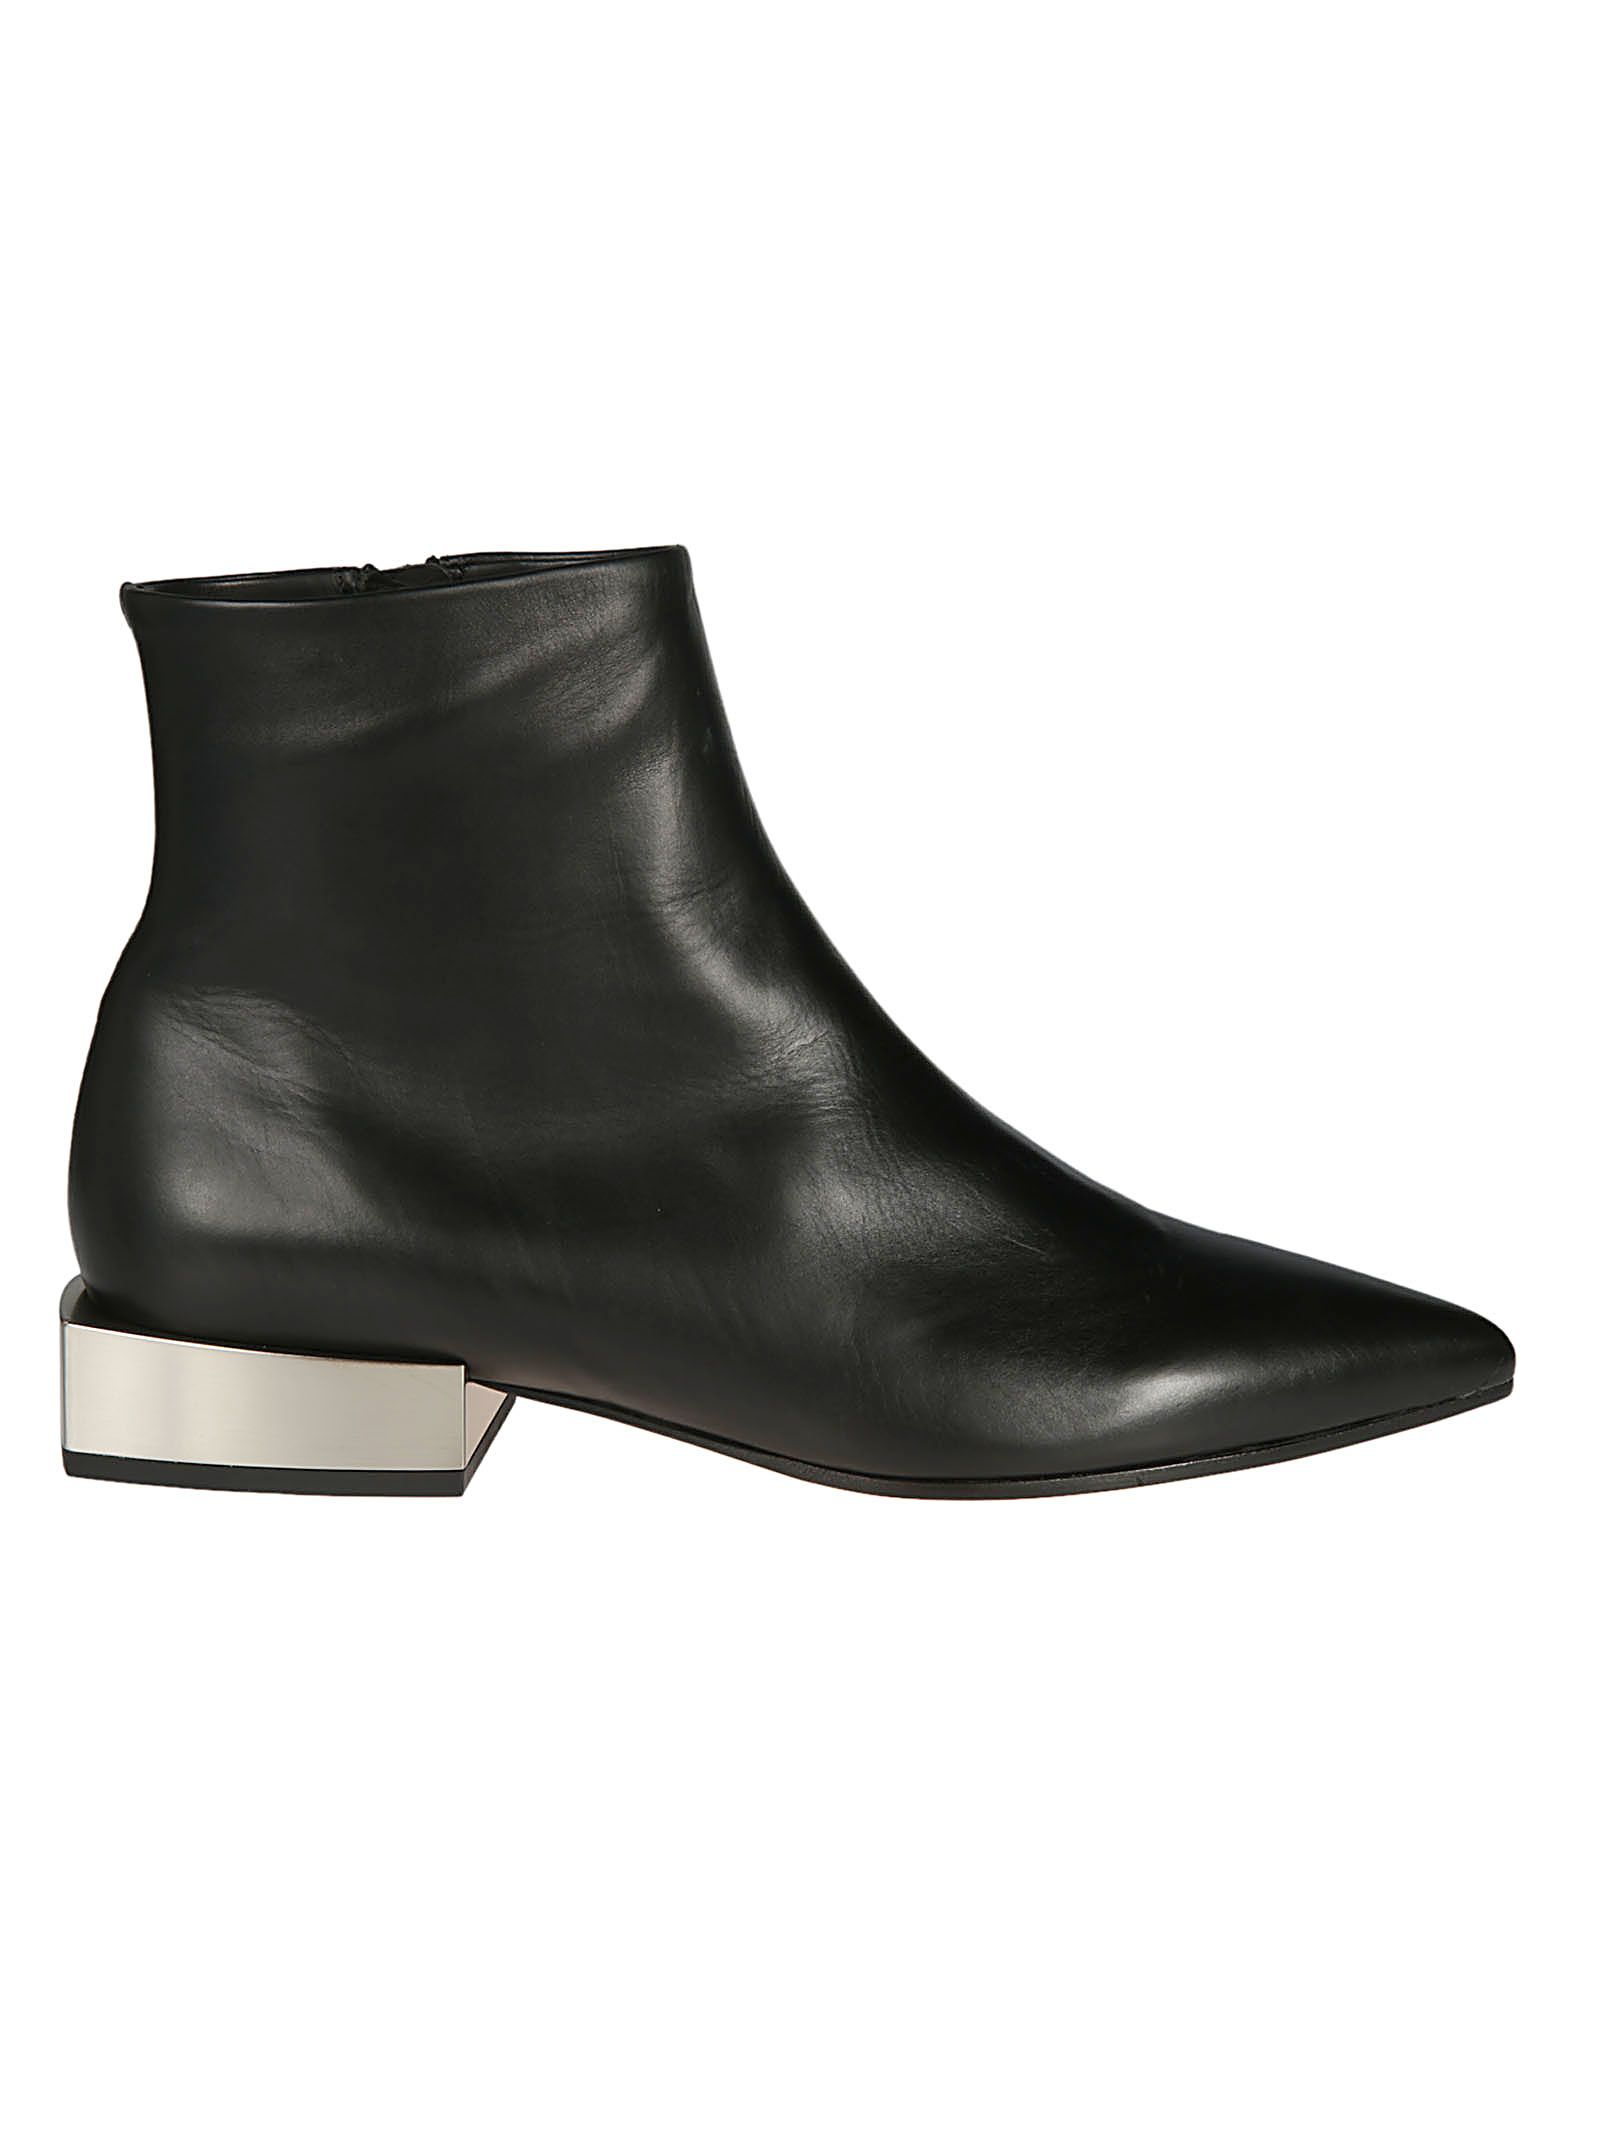 VIC MATIE Vic Matie' Squared Heel Ankle Boots in Nero